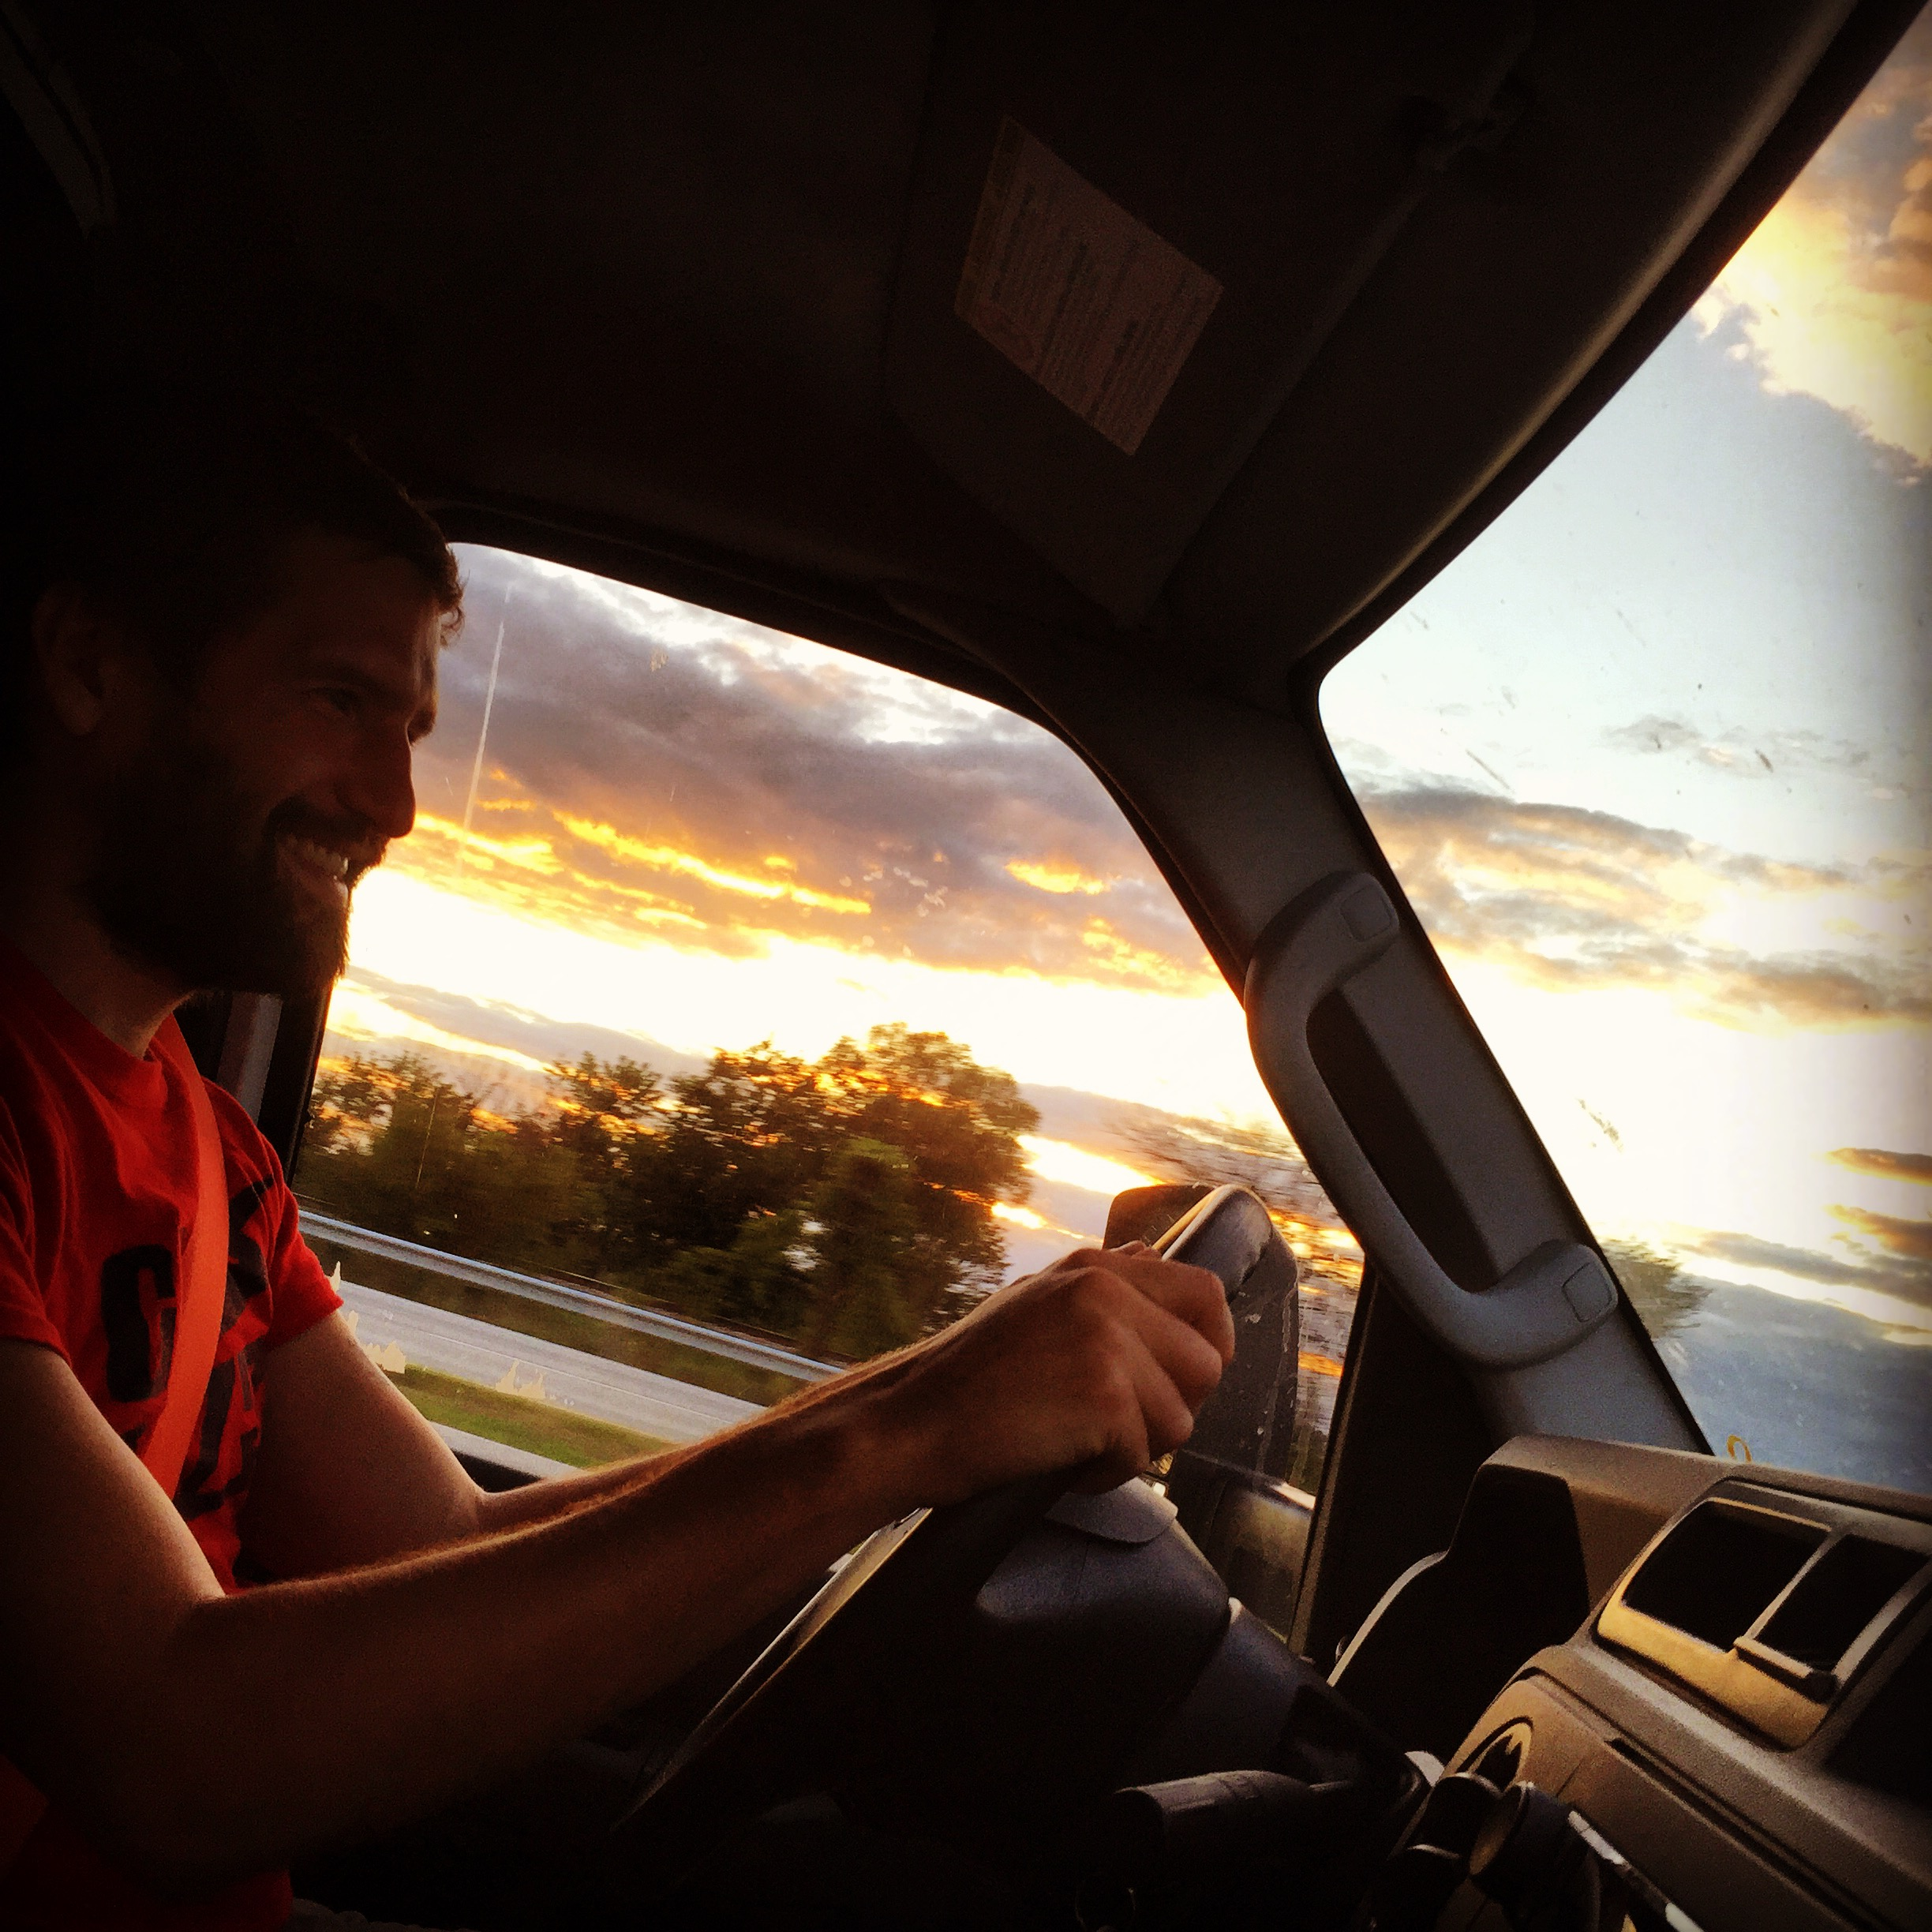 Here's Luke driving from New Orleans to Chicago. We were in Illinois at this point. Corn was everywhere. Corn is so wonderfully non-judgmental.